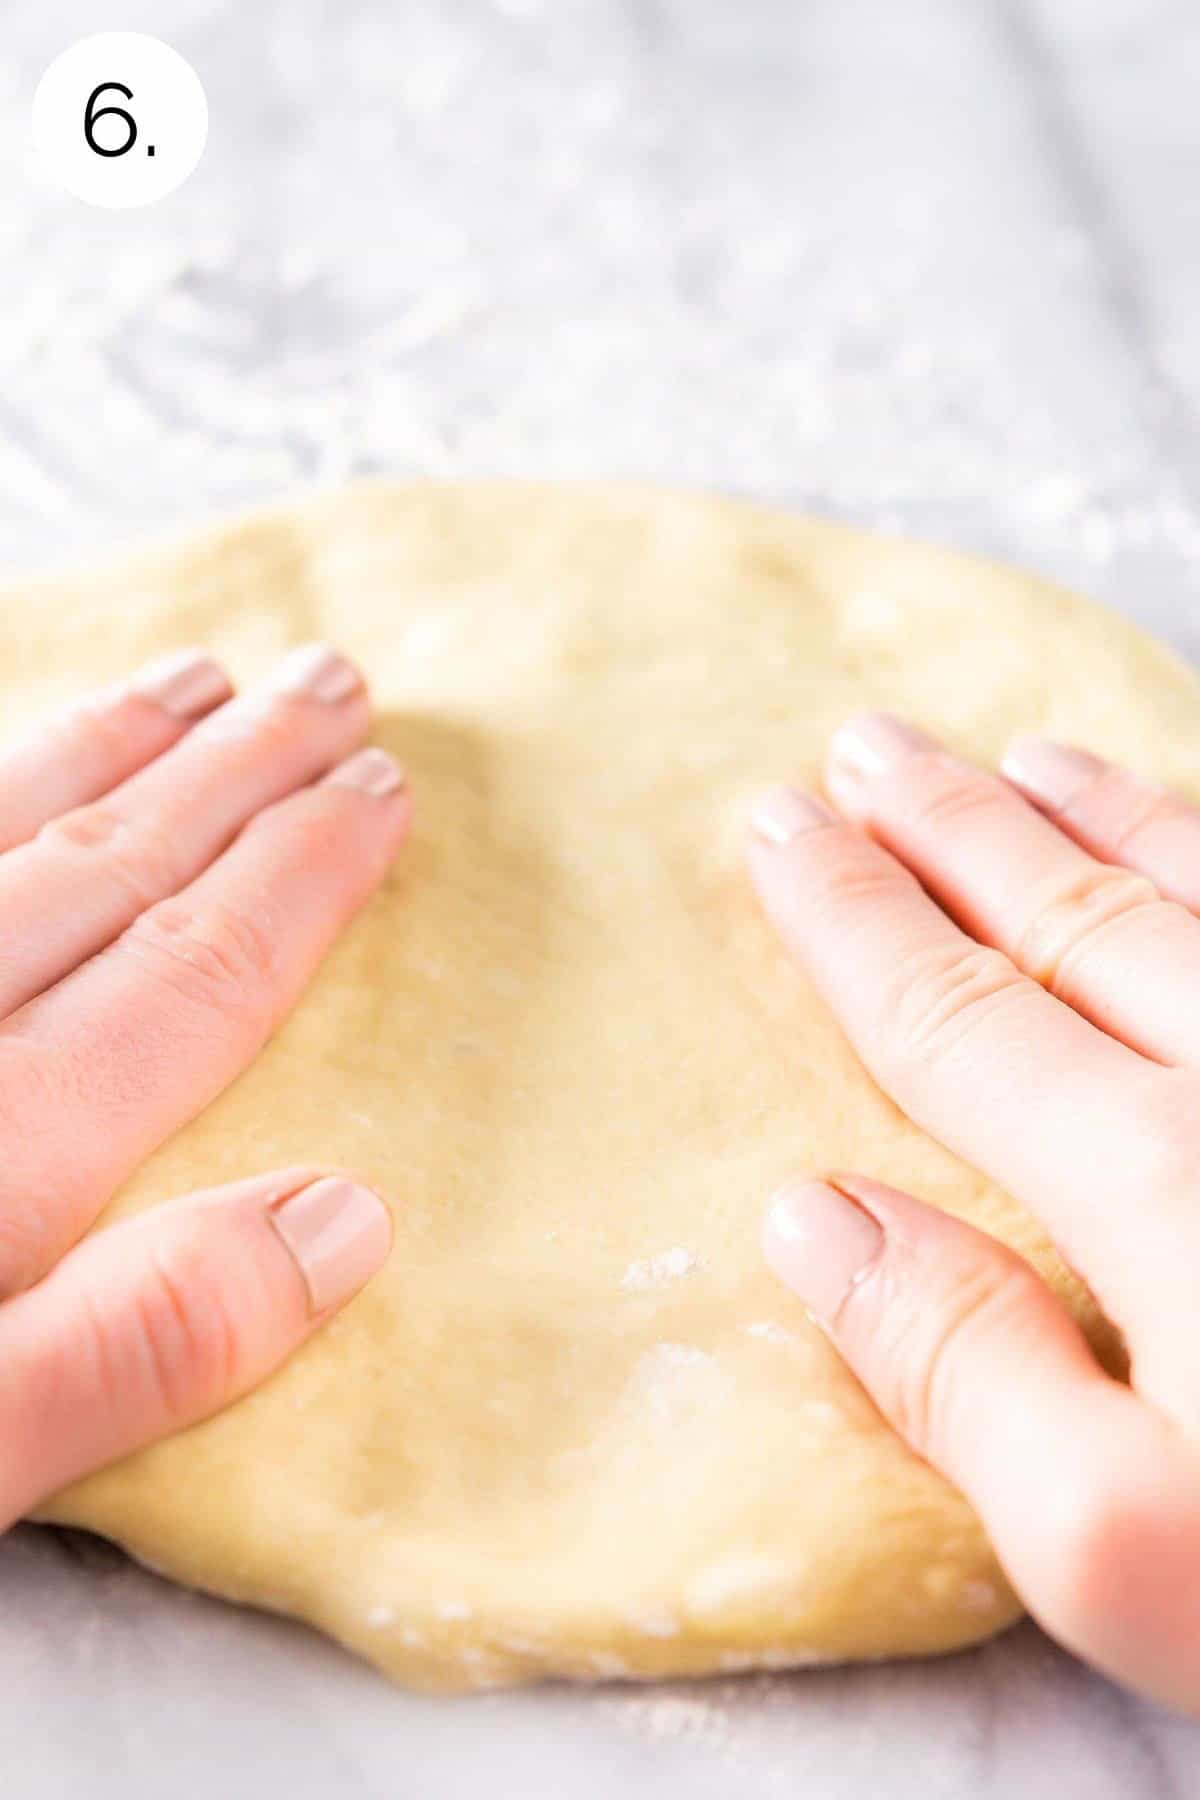 Hand-stretching the dough with the beds of fingertips on a lightly floured pastry board.